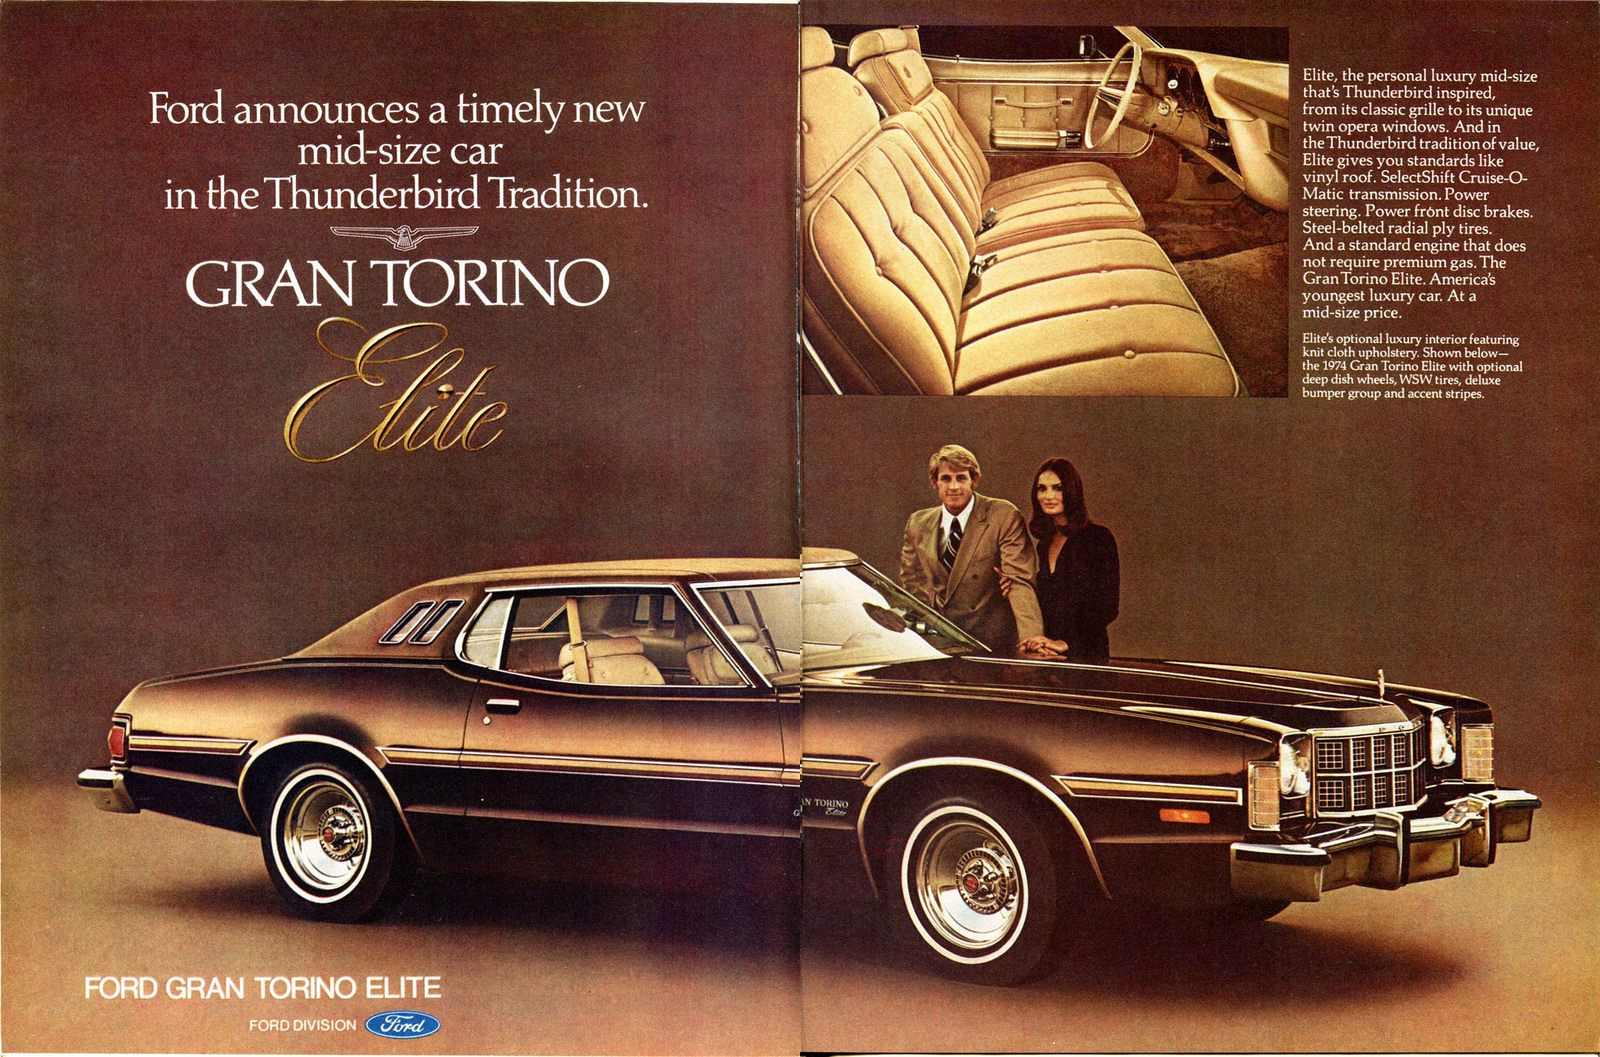 1974 Ford Gran Torino Elite Advertising Road Track March 1974 Car Advertising Mid Size Car Ford